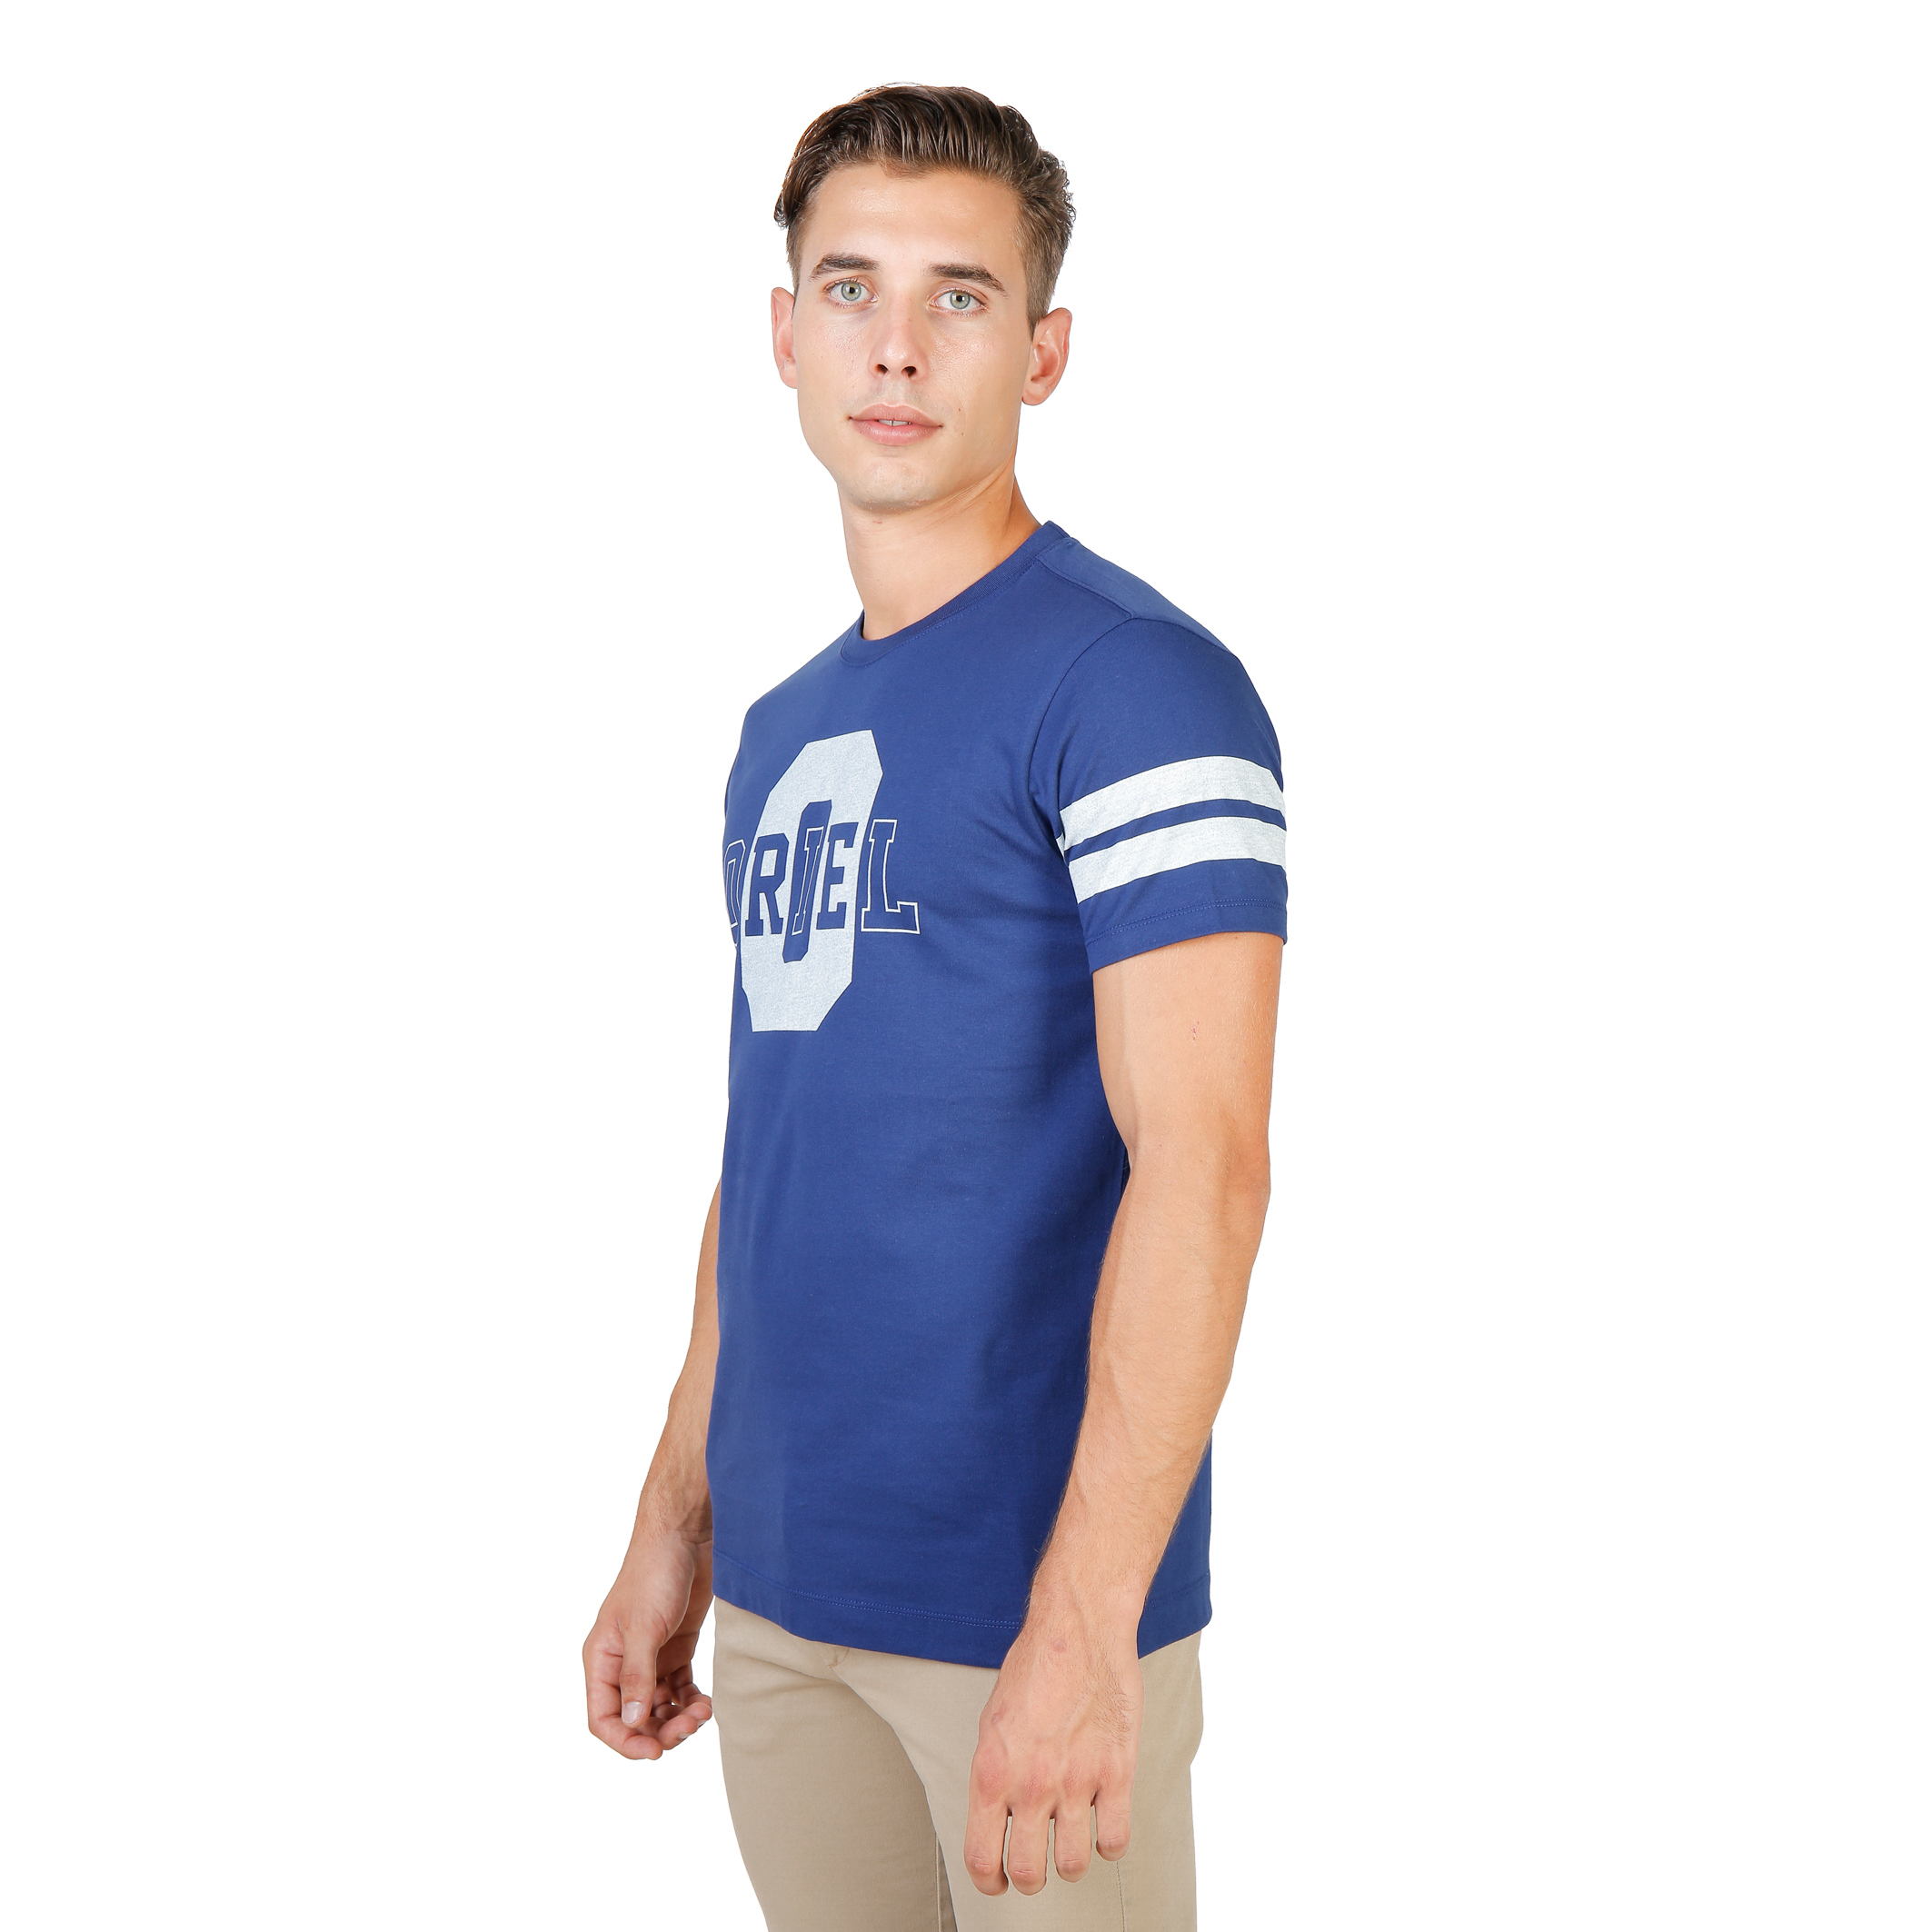 Tee-shirts  Oxford University ORIEL-STRIPED-MM blue